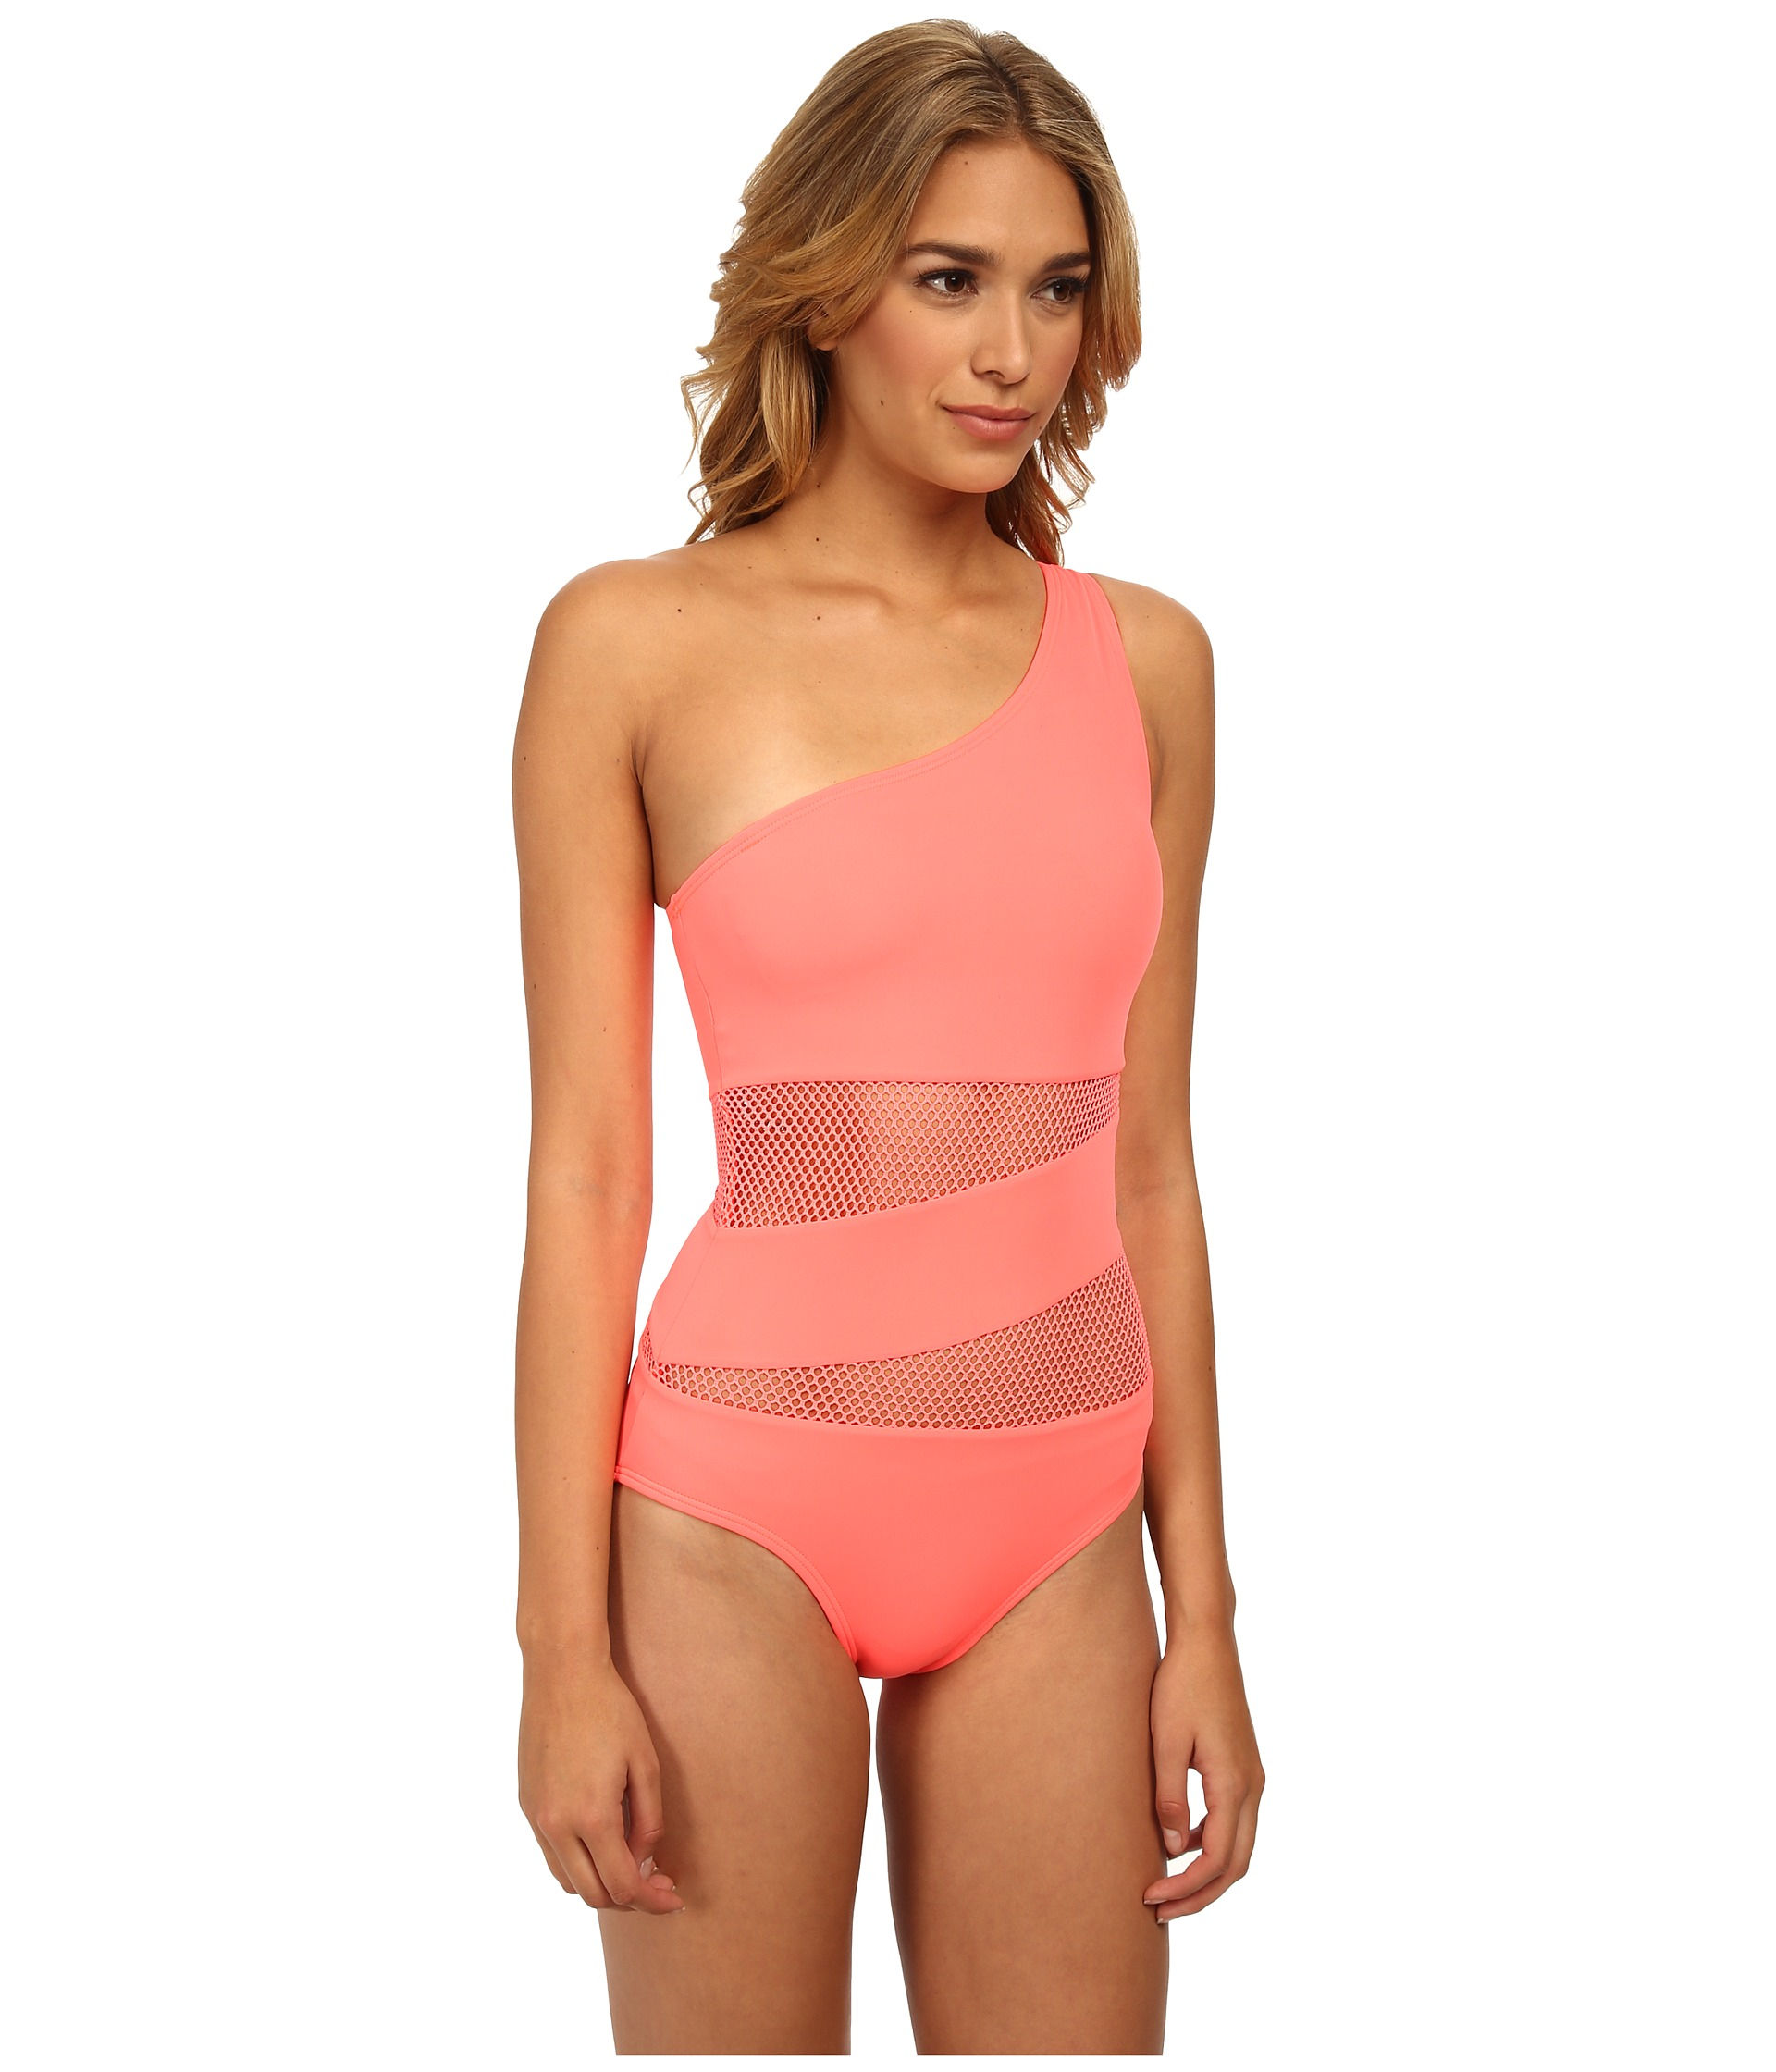 c2eb5cd624bd0 DKNY Mesh Effect Splice One Shoulder Maillot One-Piece in Pink - Lyst